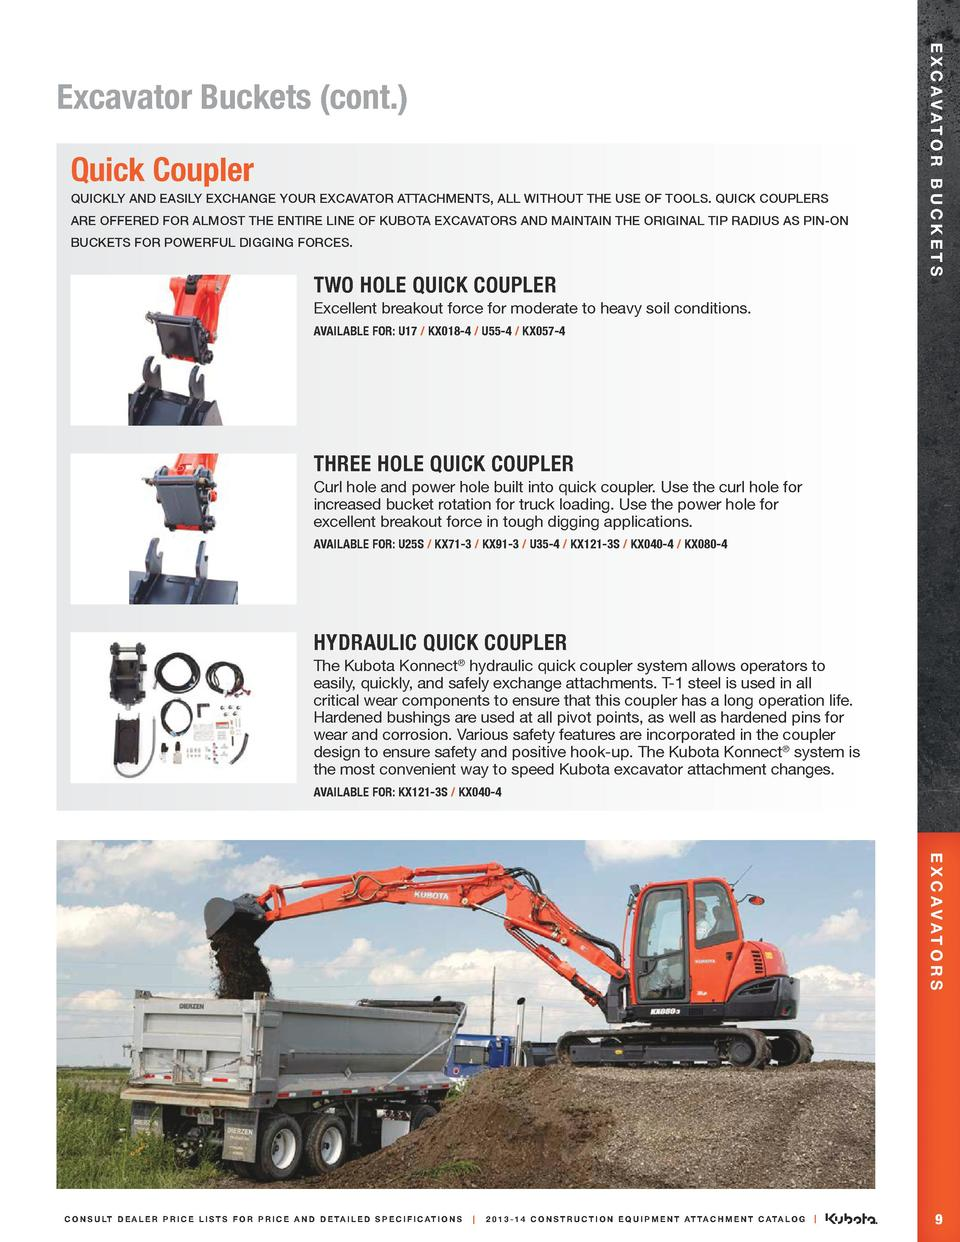 Quick Coupler Quickly and easily exchange your excavator attachments, all without the use of tools. Quick Couplers are off...